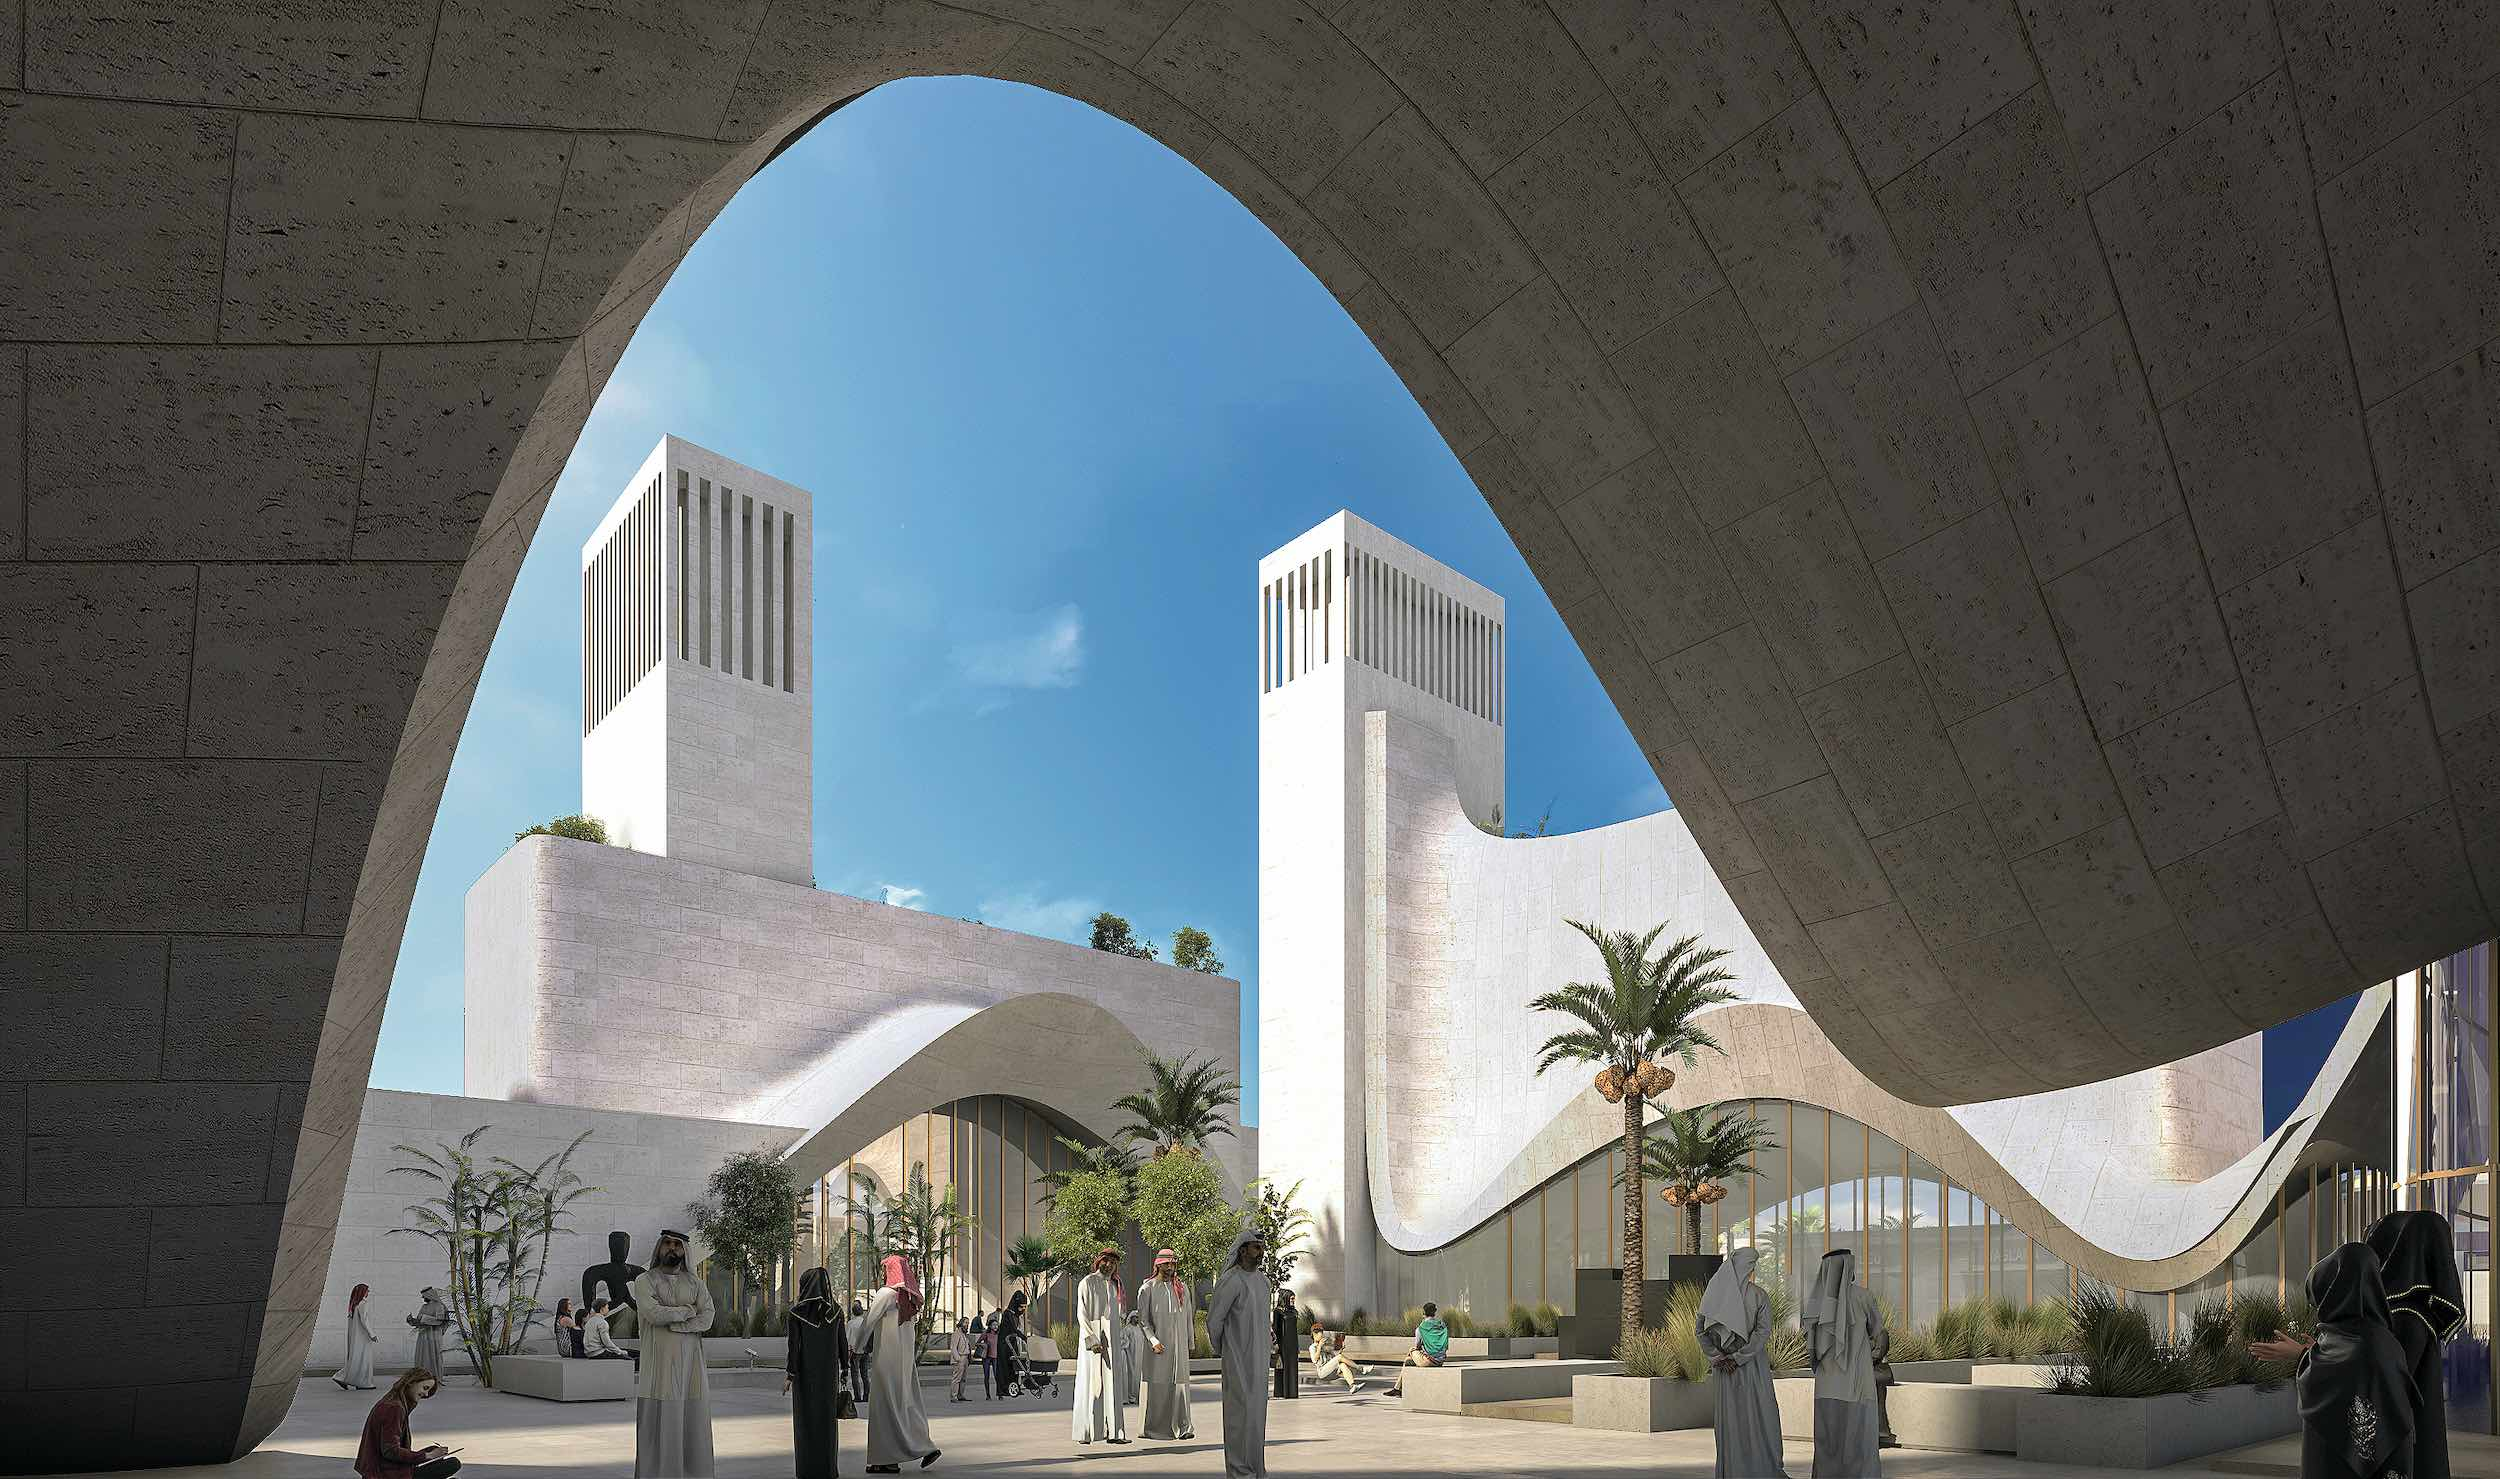 the interior of museum is inspired by ancient Arab courtyard